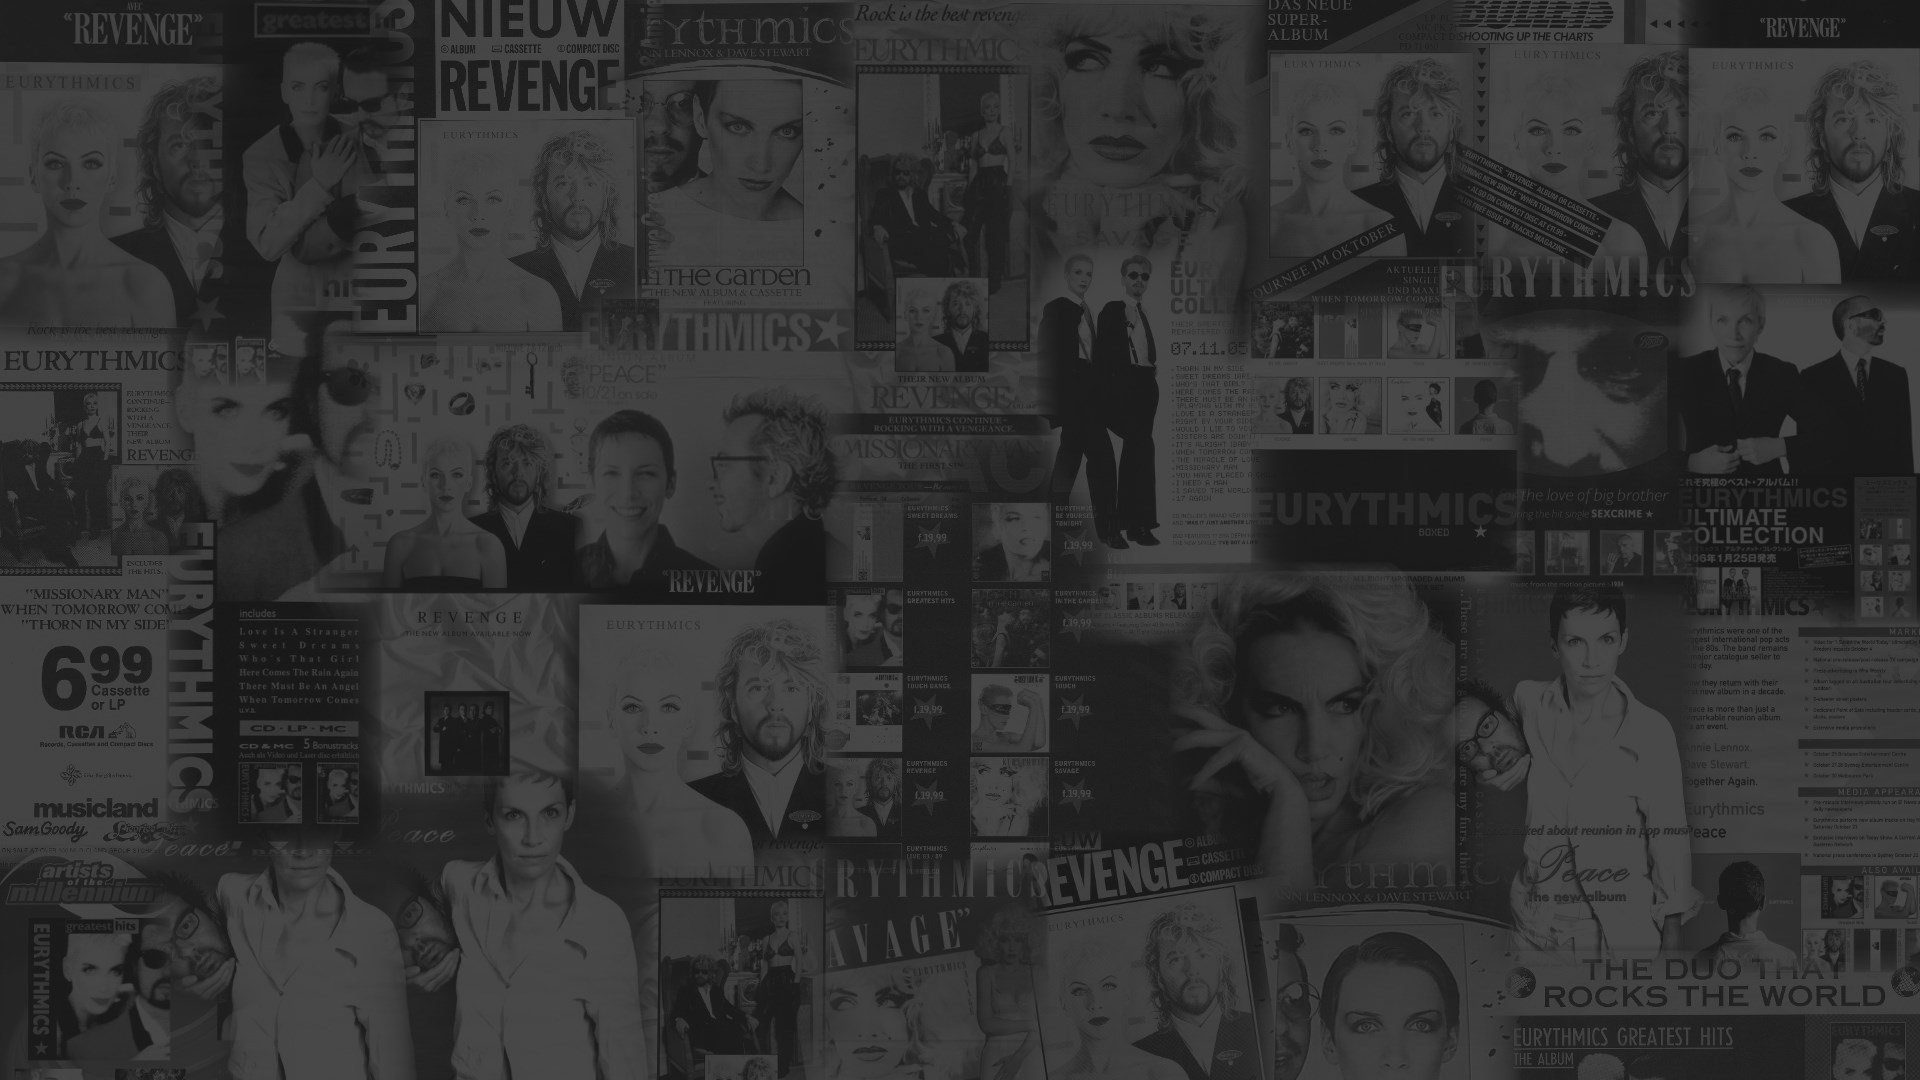 Ultimate Eurythmics Annie Lennox Dave Stewart Advert Gallery Background 04